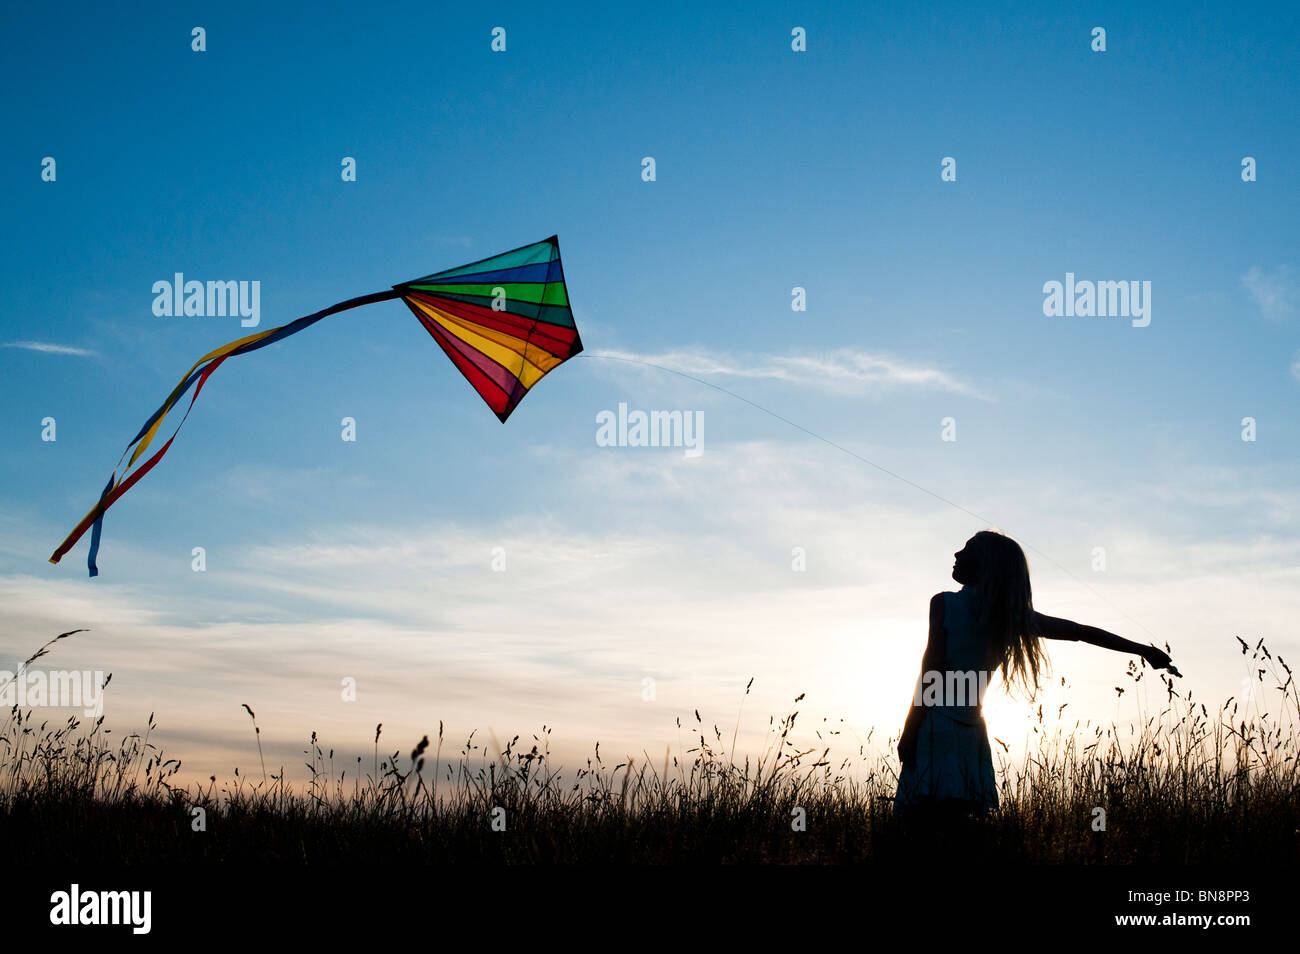 Young Girl having fun flying a multicoloured kite in the English countryside. Silhouette - Stock Image